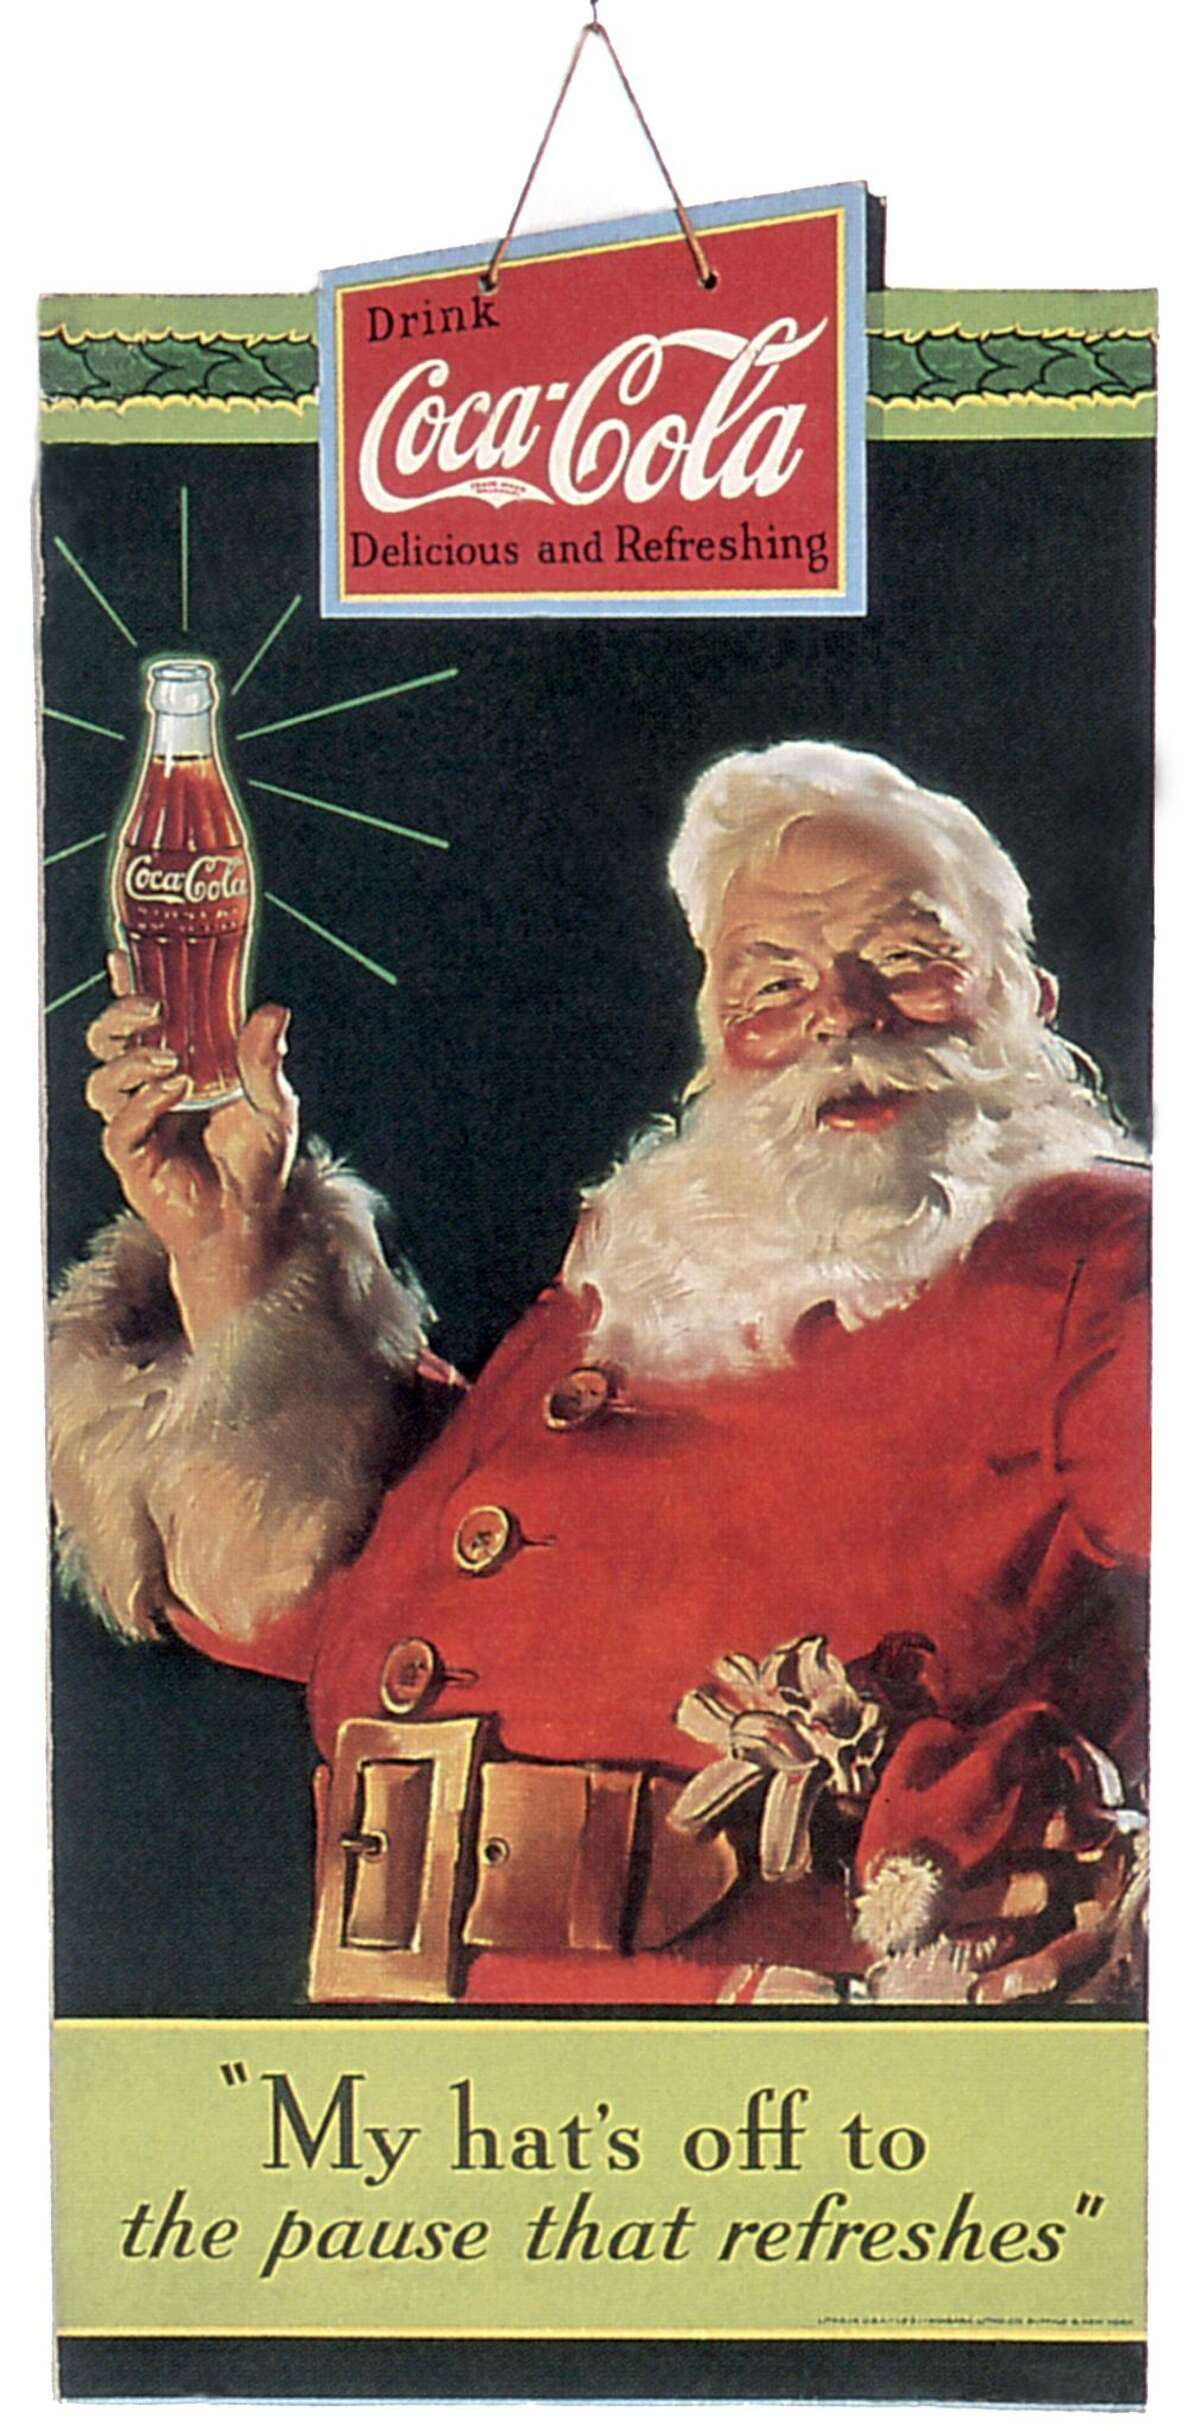 1934: Publicity of Christmas for the soda Coca-Cola, publishing in 1934 and realized by Haddon Sundblom who works for the company from 1931 to 1960.